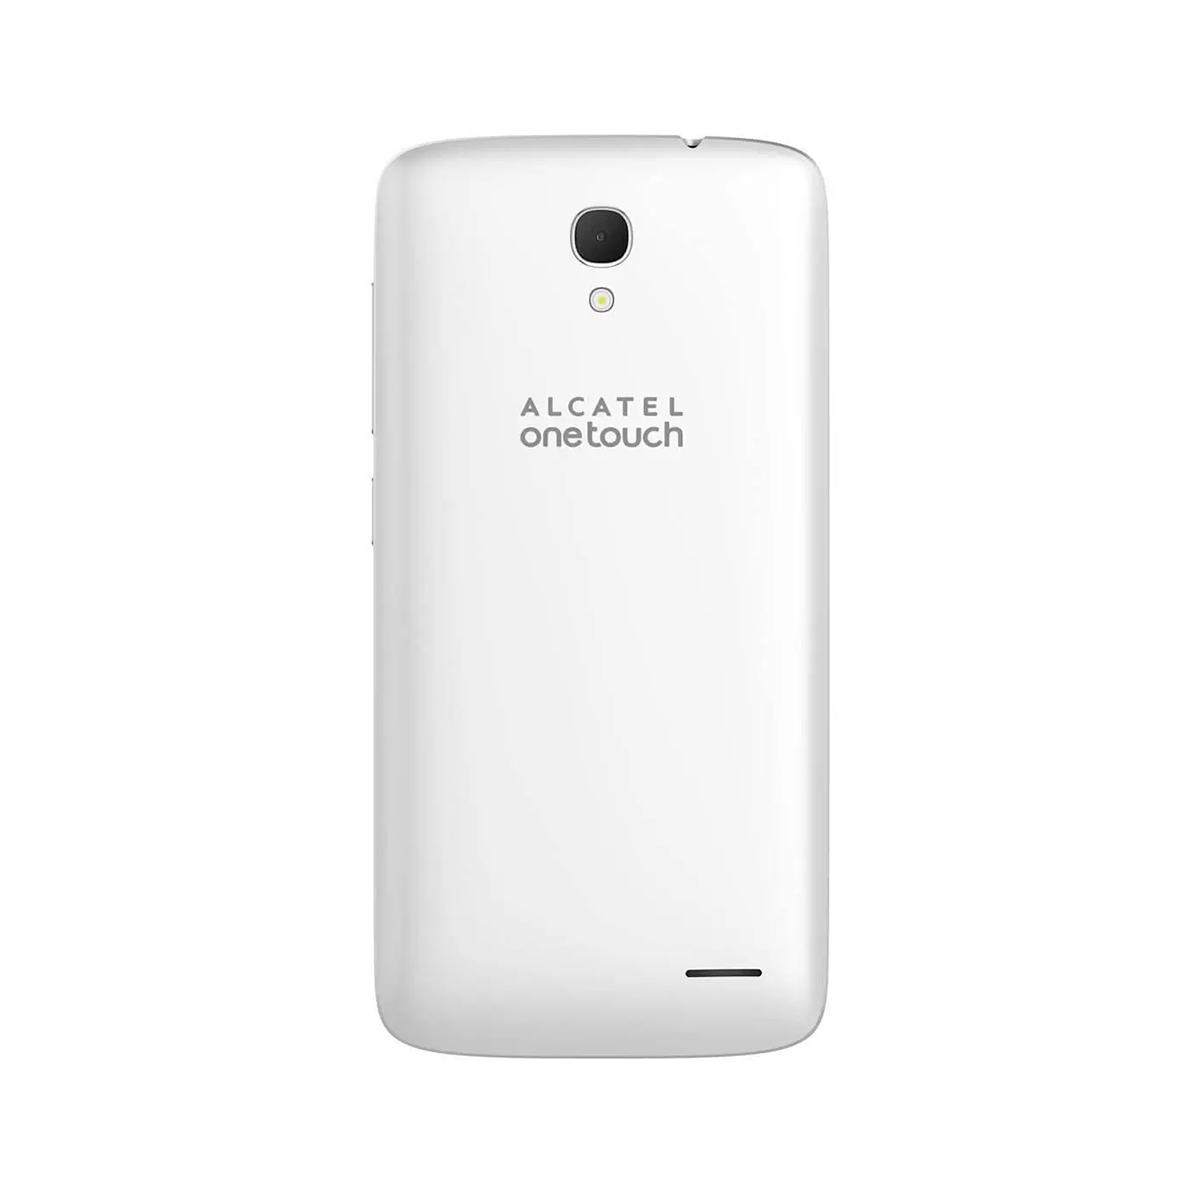 Alcatel One Touch Pop 2 5042a 8gb 4g Android - Mostruário